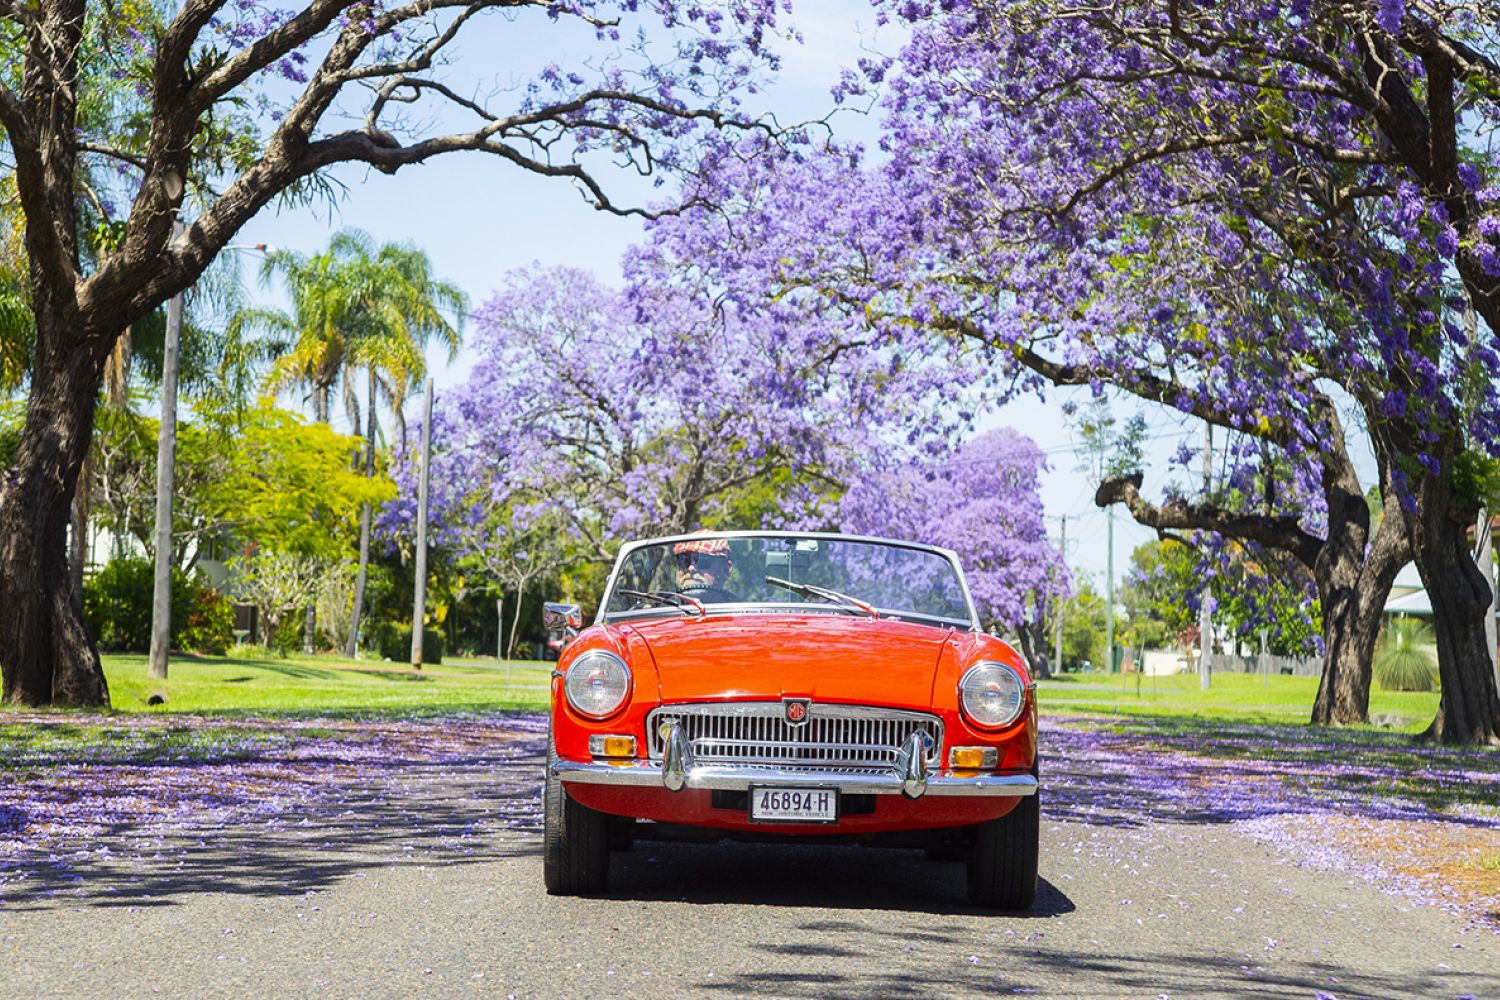 Vintage car passing through a jacaranda-lined street in Grafton, Clarence Valley